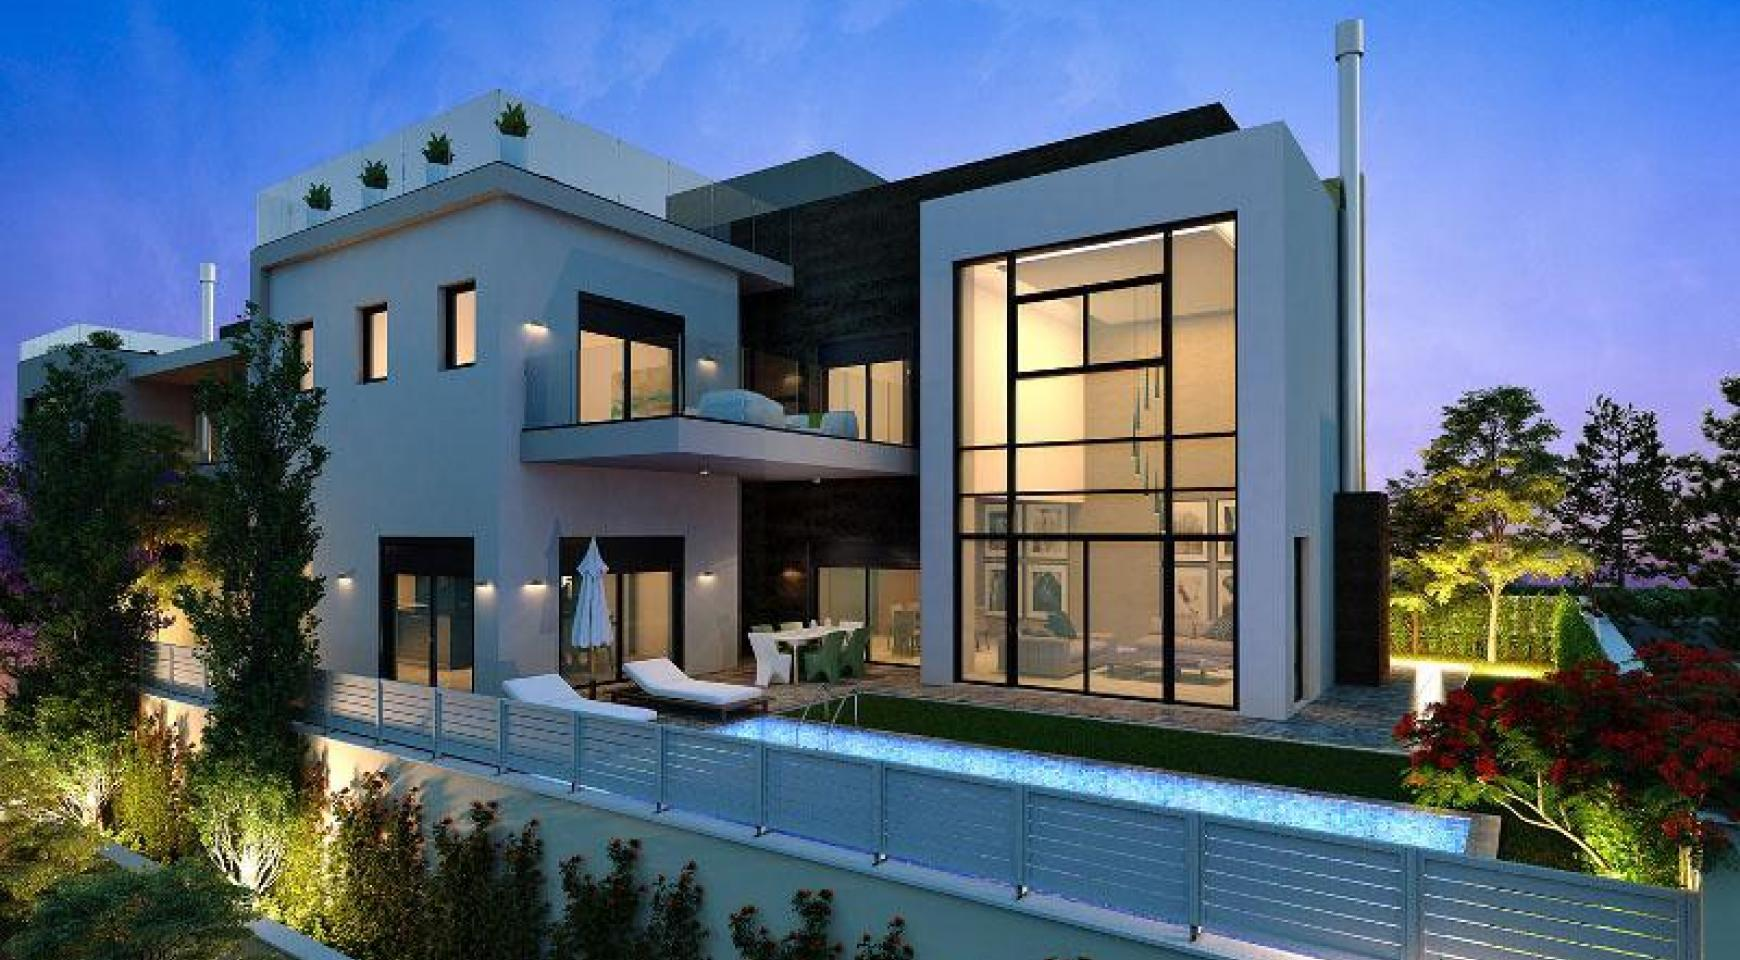 New Modern Spacious 5 Bedroom Villa near the Sea - 2